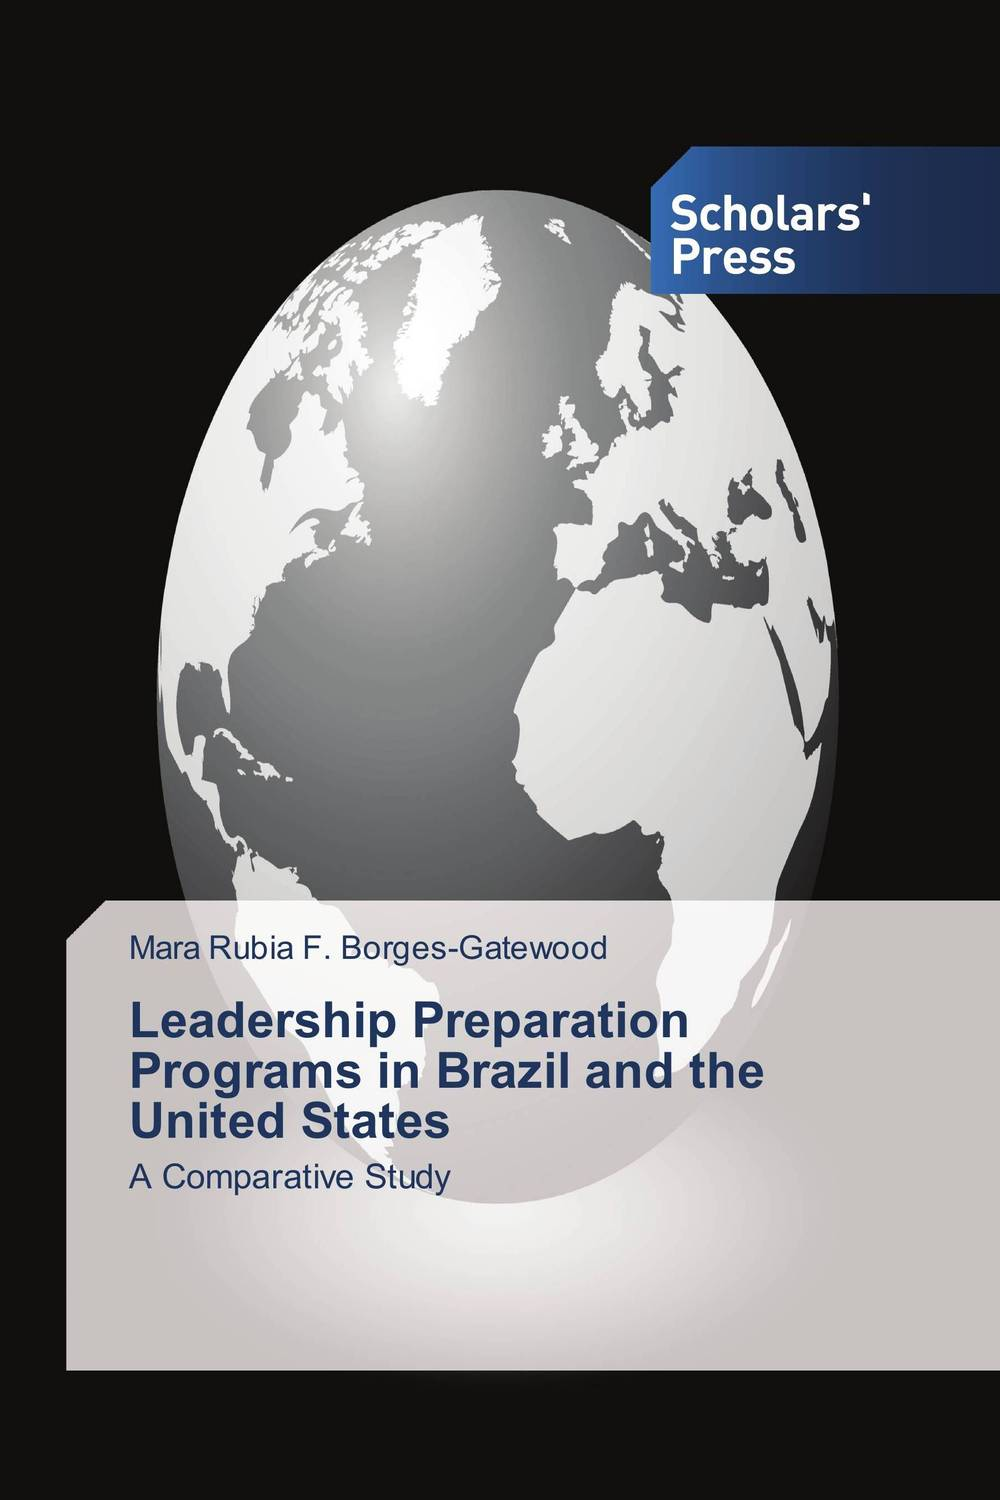 Leadership Preparation Programs in Brazil and the United States role of school leadership in promoting moral integrity among students